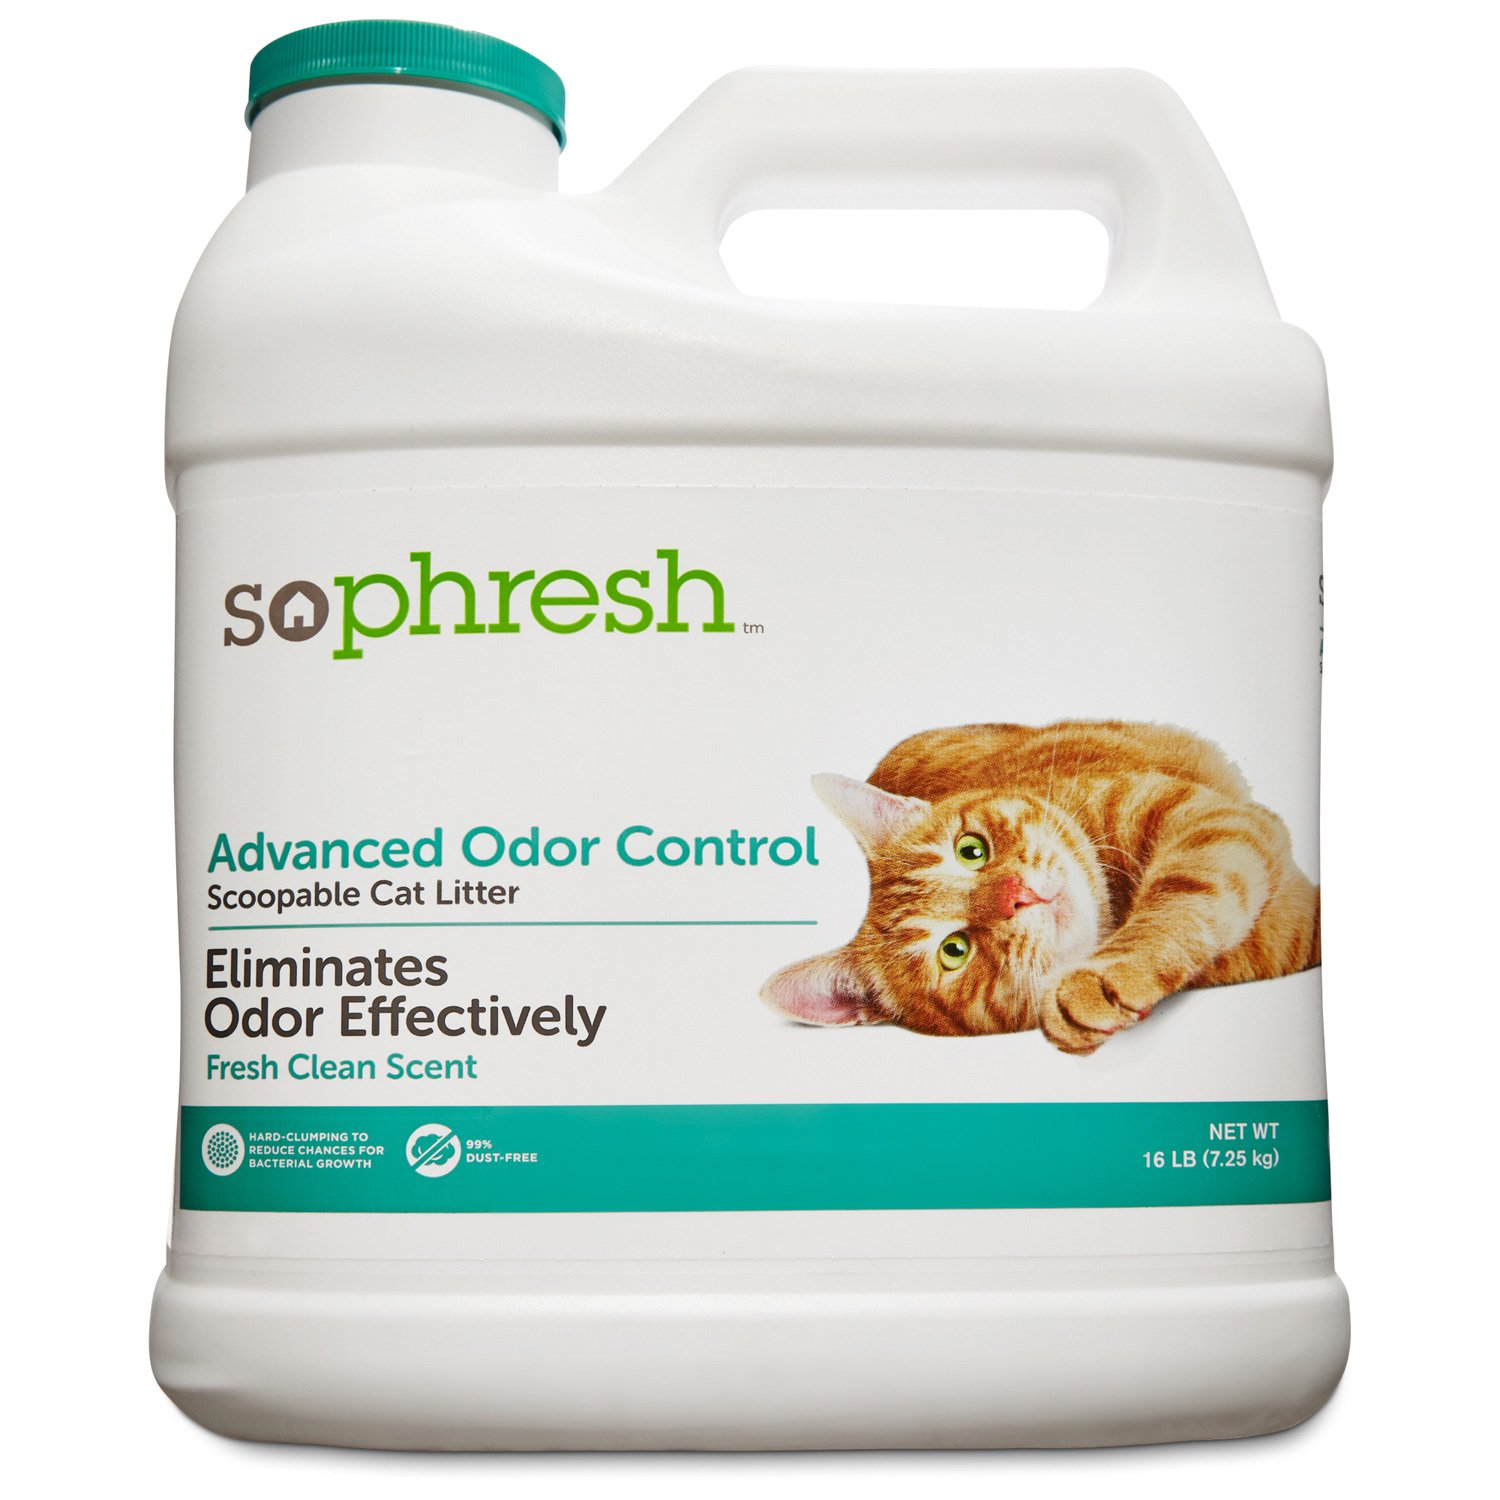 So Phresh Advanced Odor Control Scoopable Scented Cat Litter